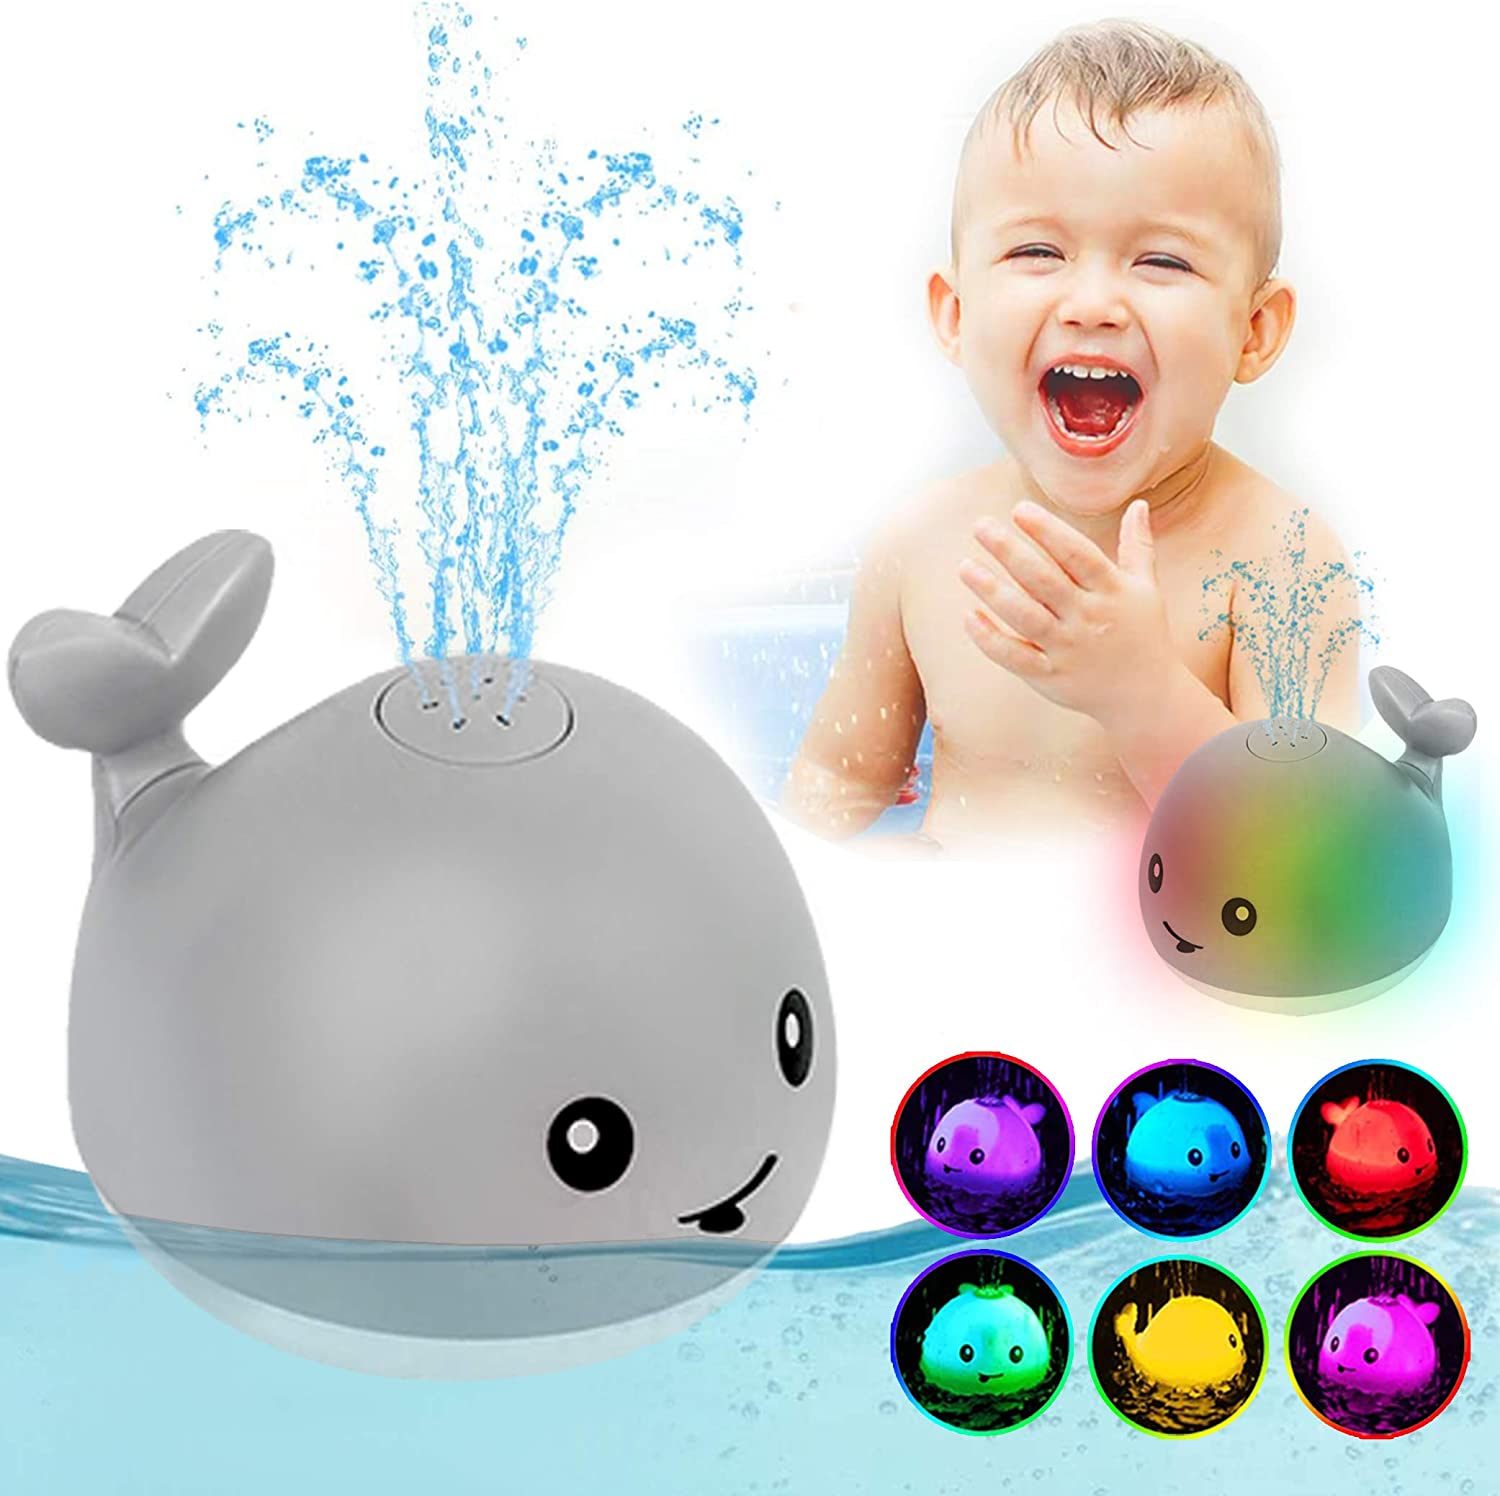 ZHENDUO Baby Bath Toys, Whale Automatic Spray Water Bath Toy with LED Light, Induction Sprinkler Bathtub Shower Toys for Toddlers Kids Boys Girls, Pool Bathroom Toy for Baby (Gray)